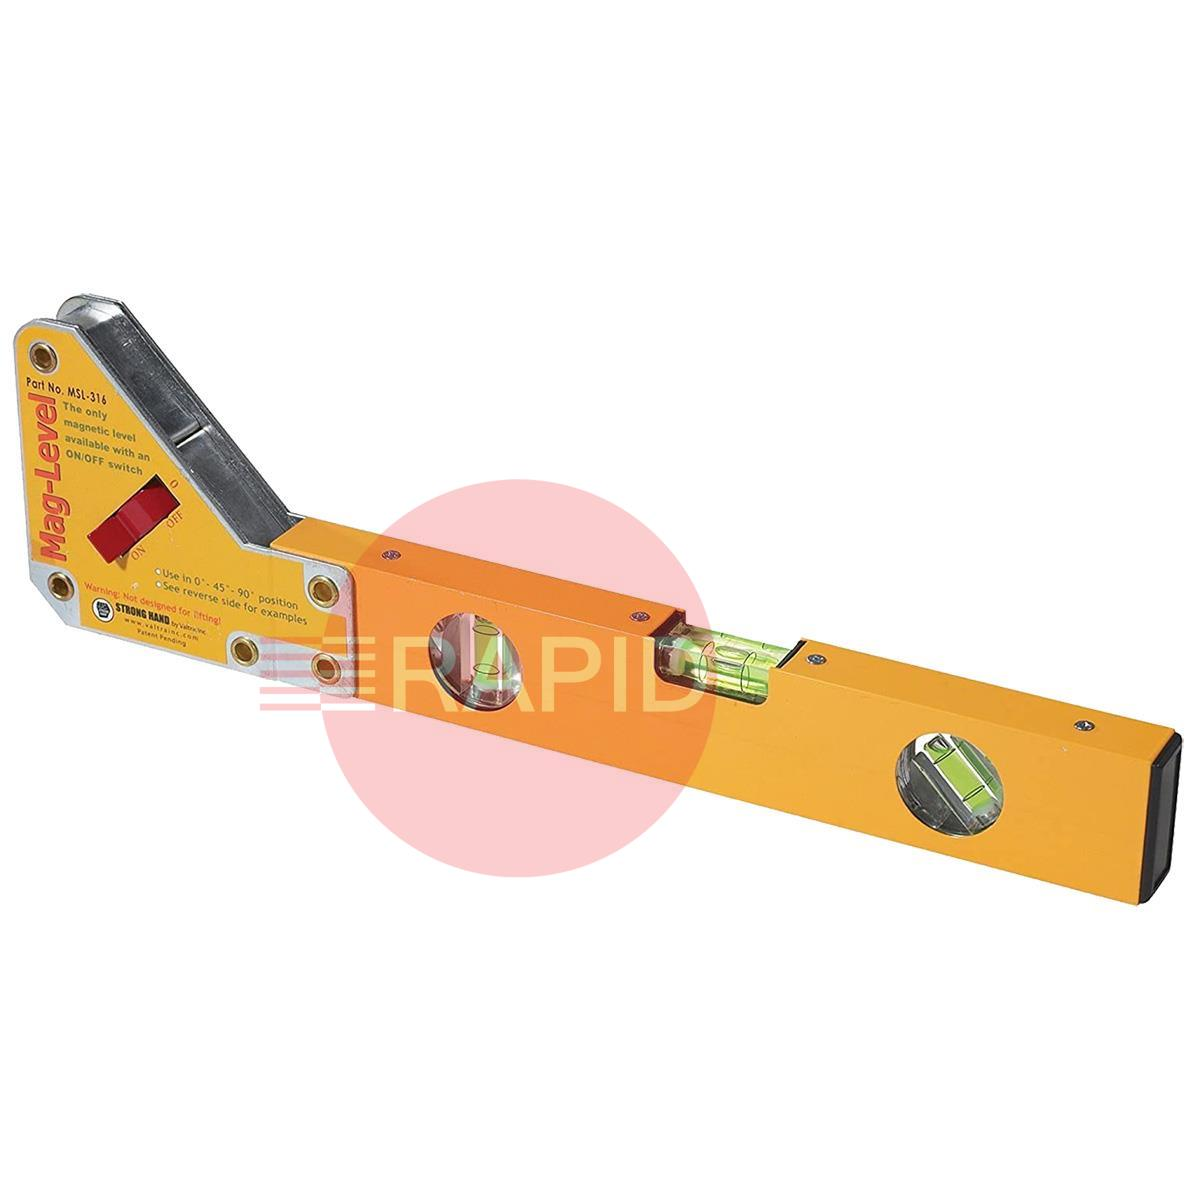 MSL-316  Mag-Level 40cm Magnetic Level with On/Off Switch